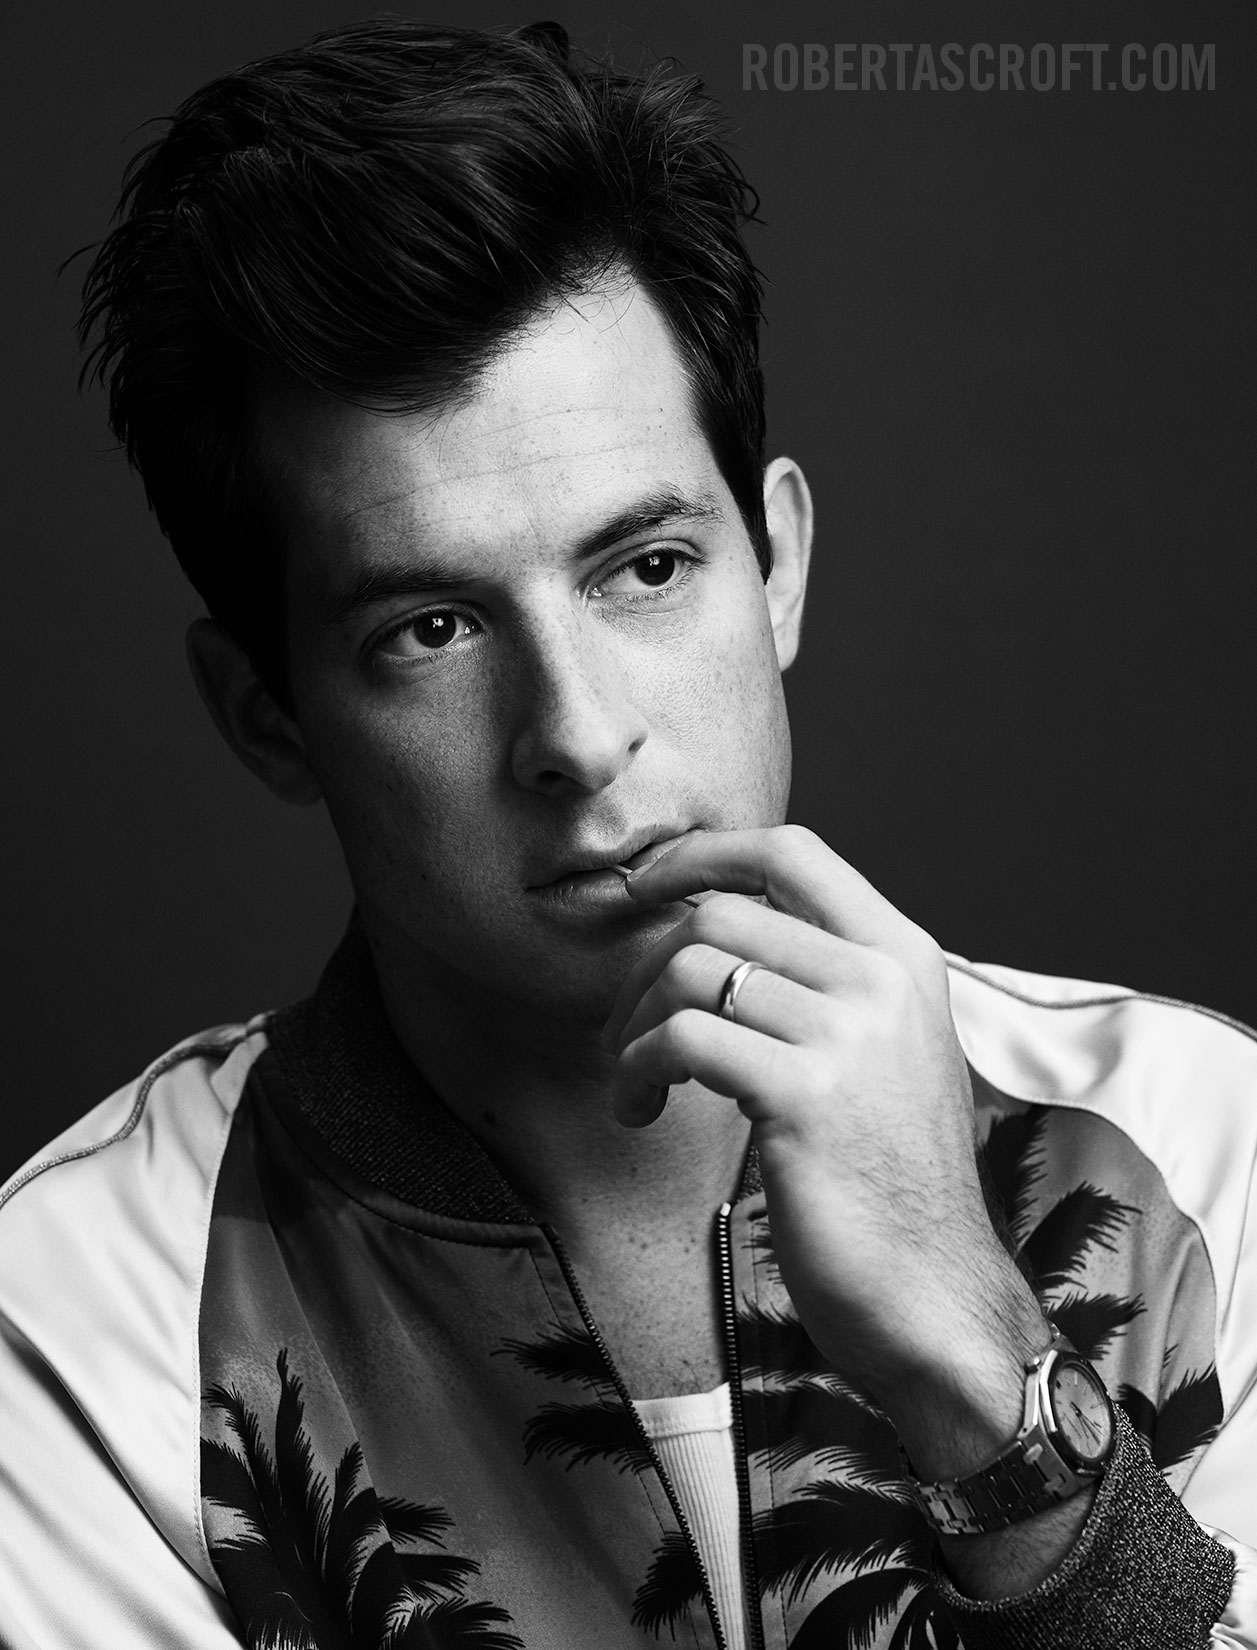 Mark-Ronson-by-Robert-Ascroft-02